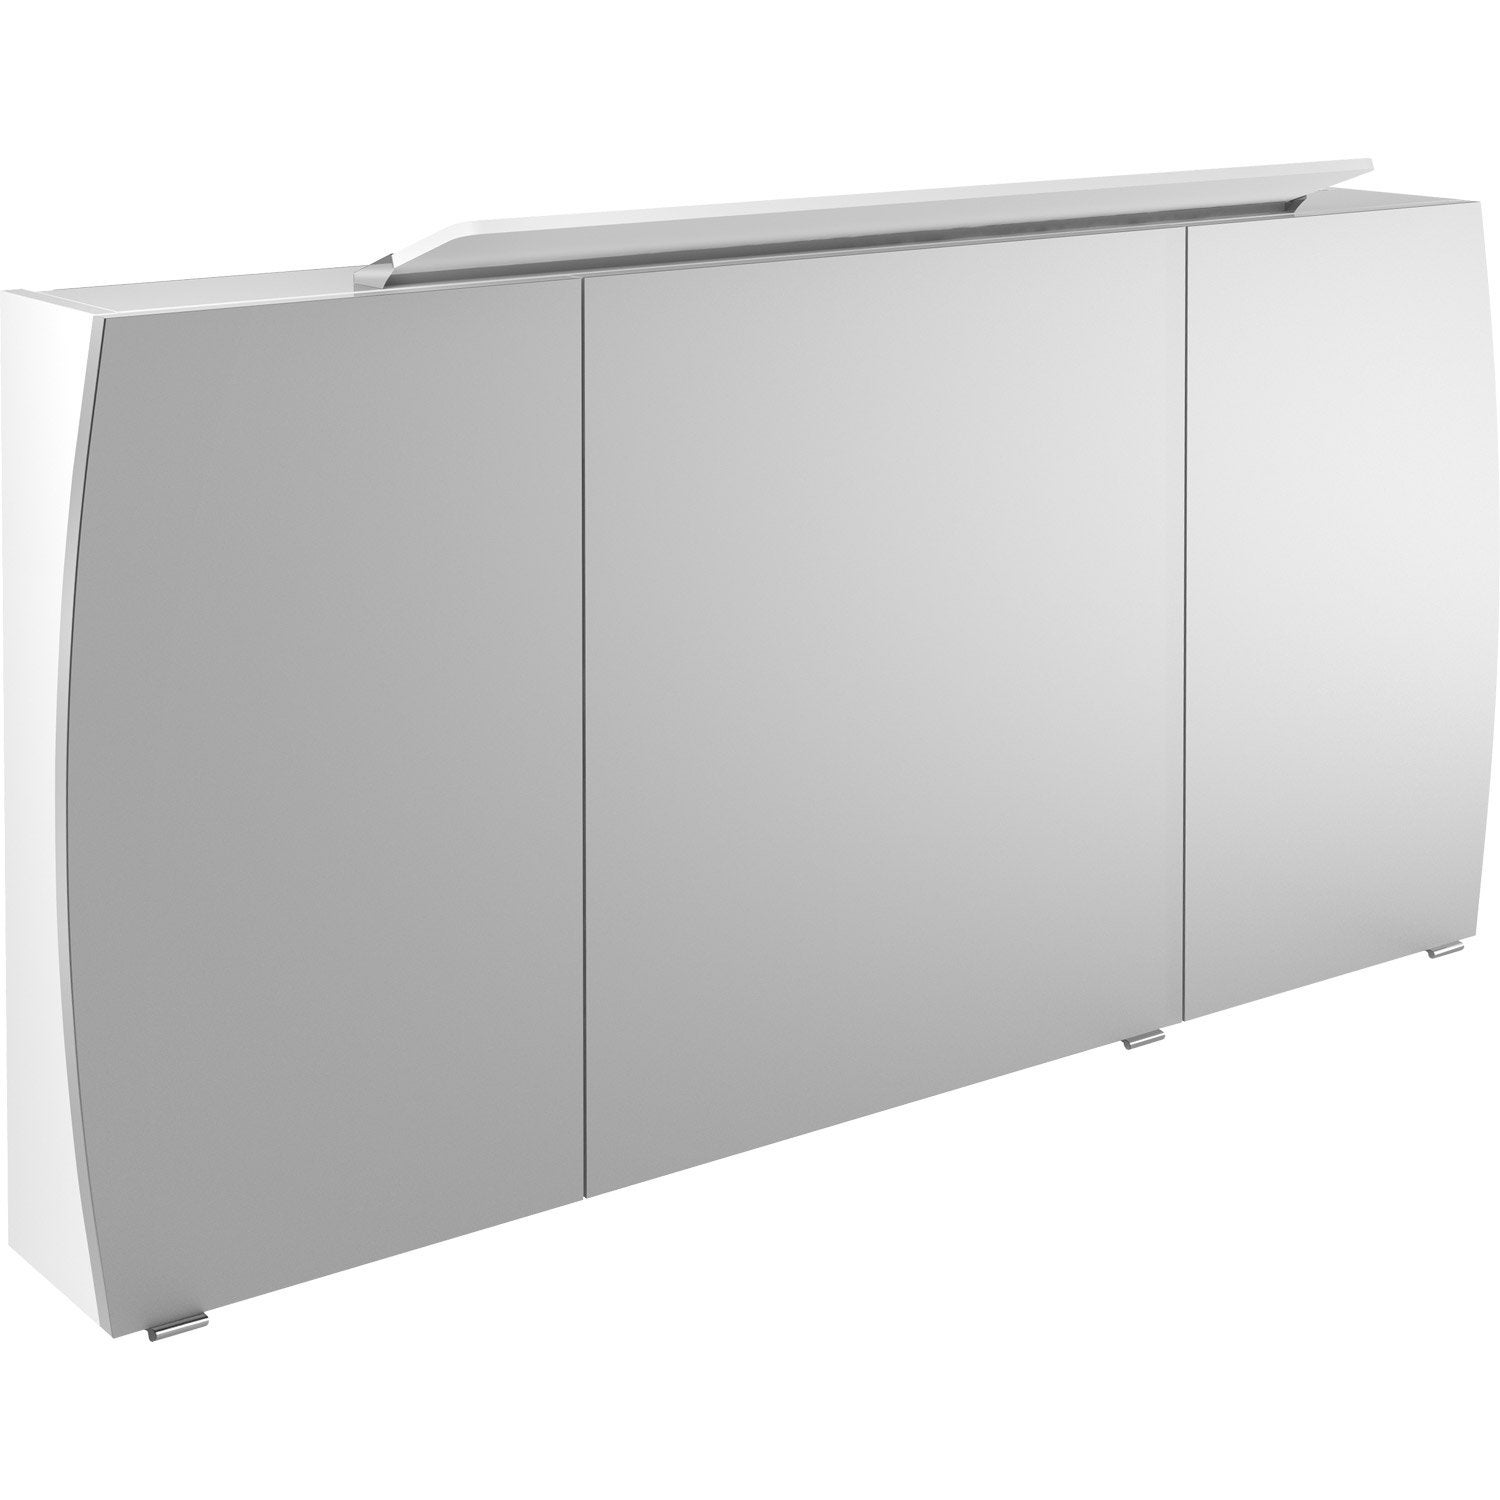 armoire de toilette lumineuse l 140 cm blanc image. Black Bedroom Furniture Sets. Home Design Ideas